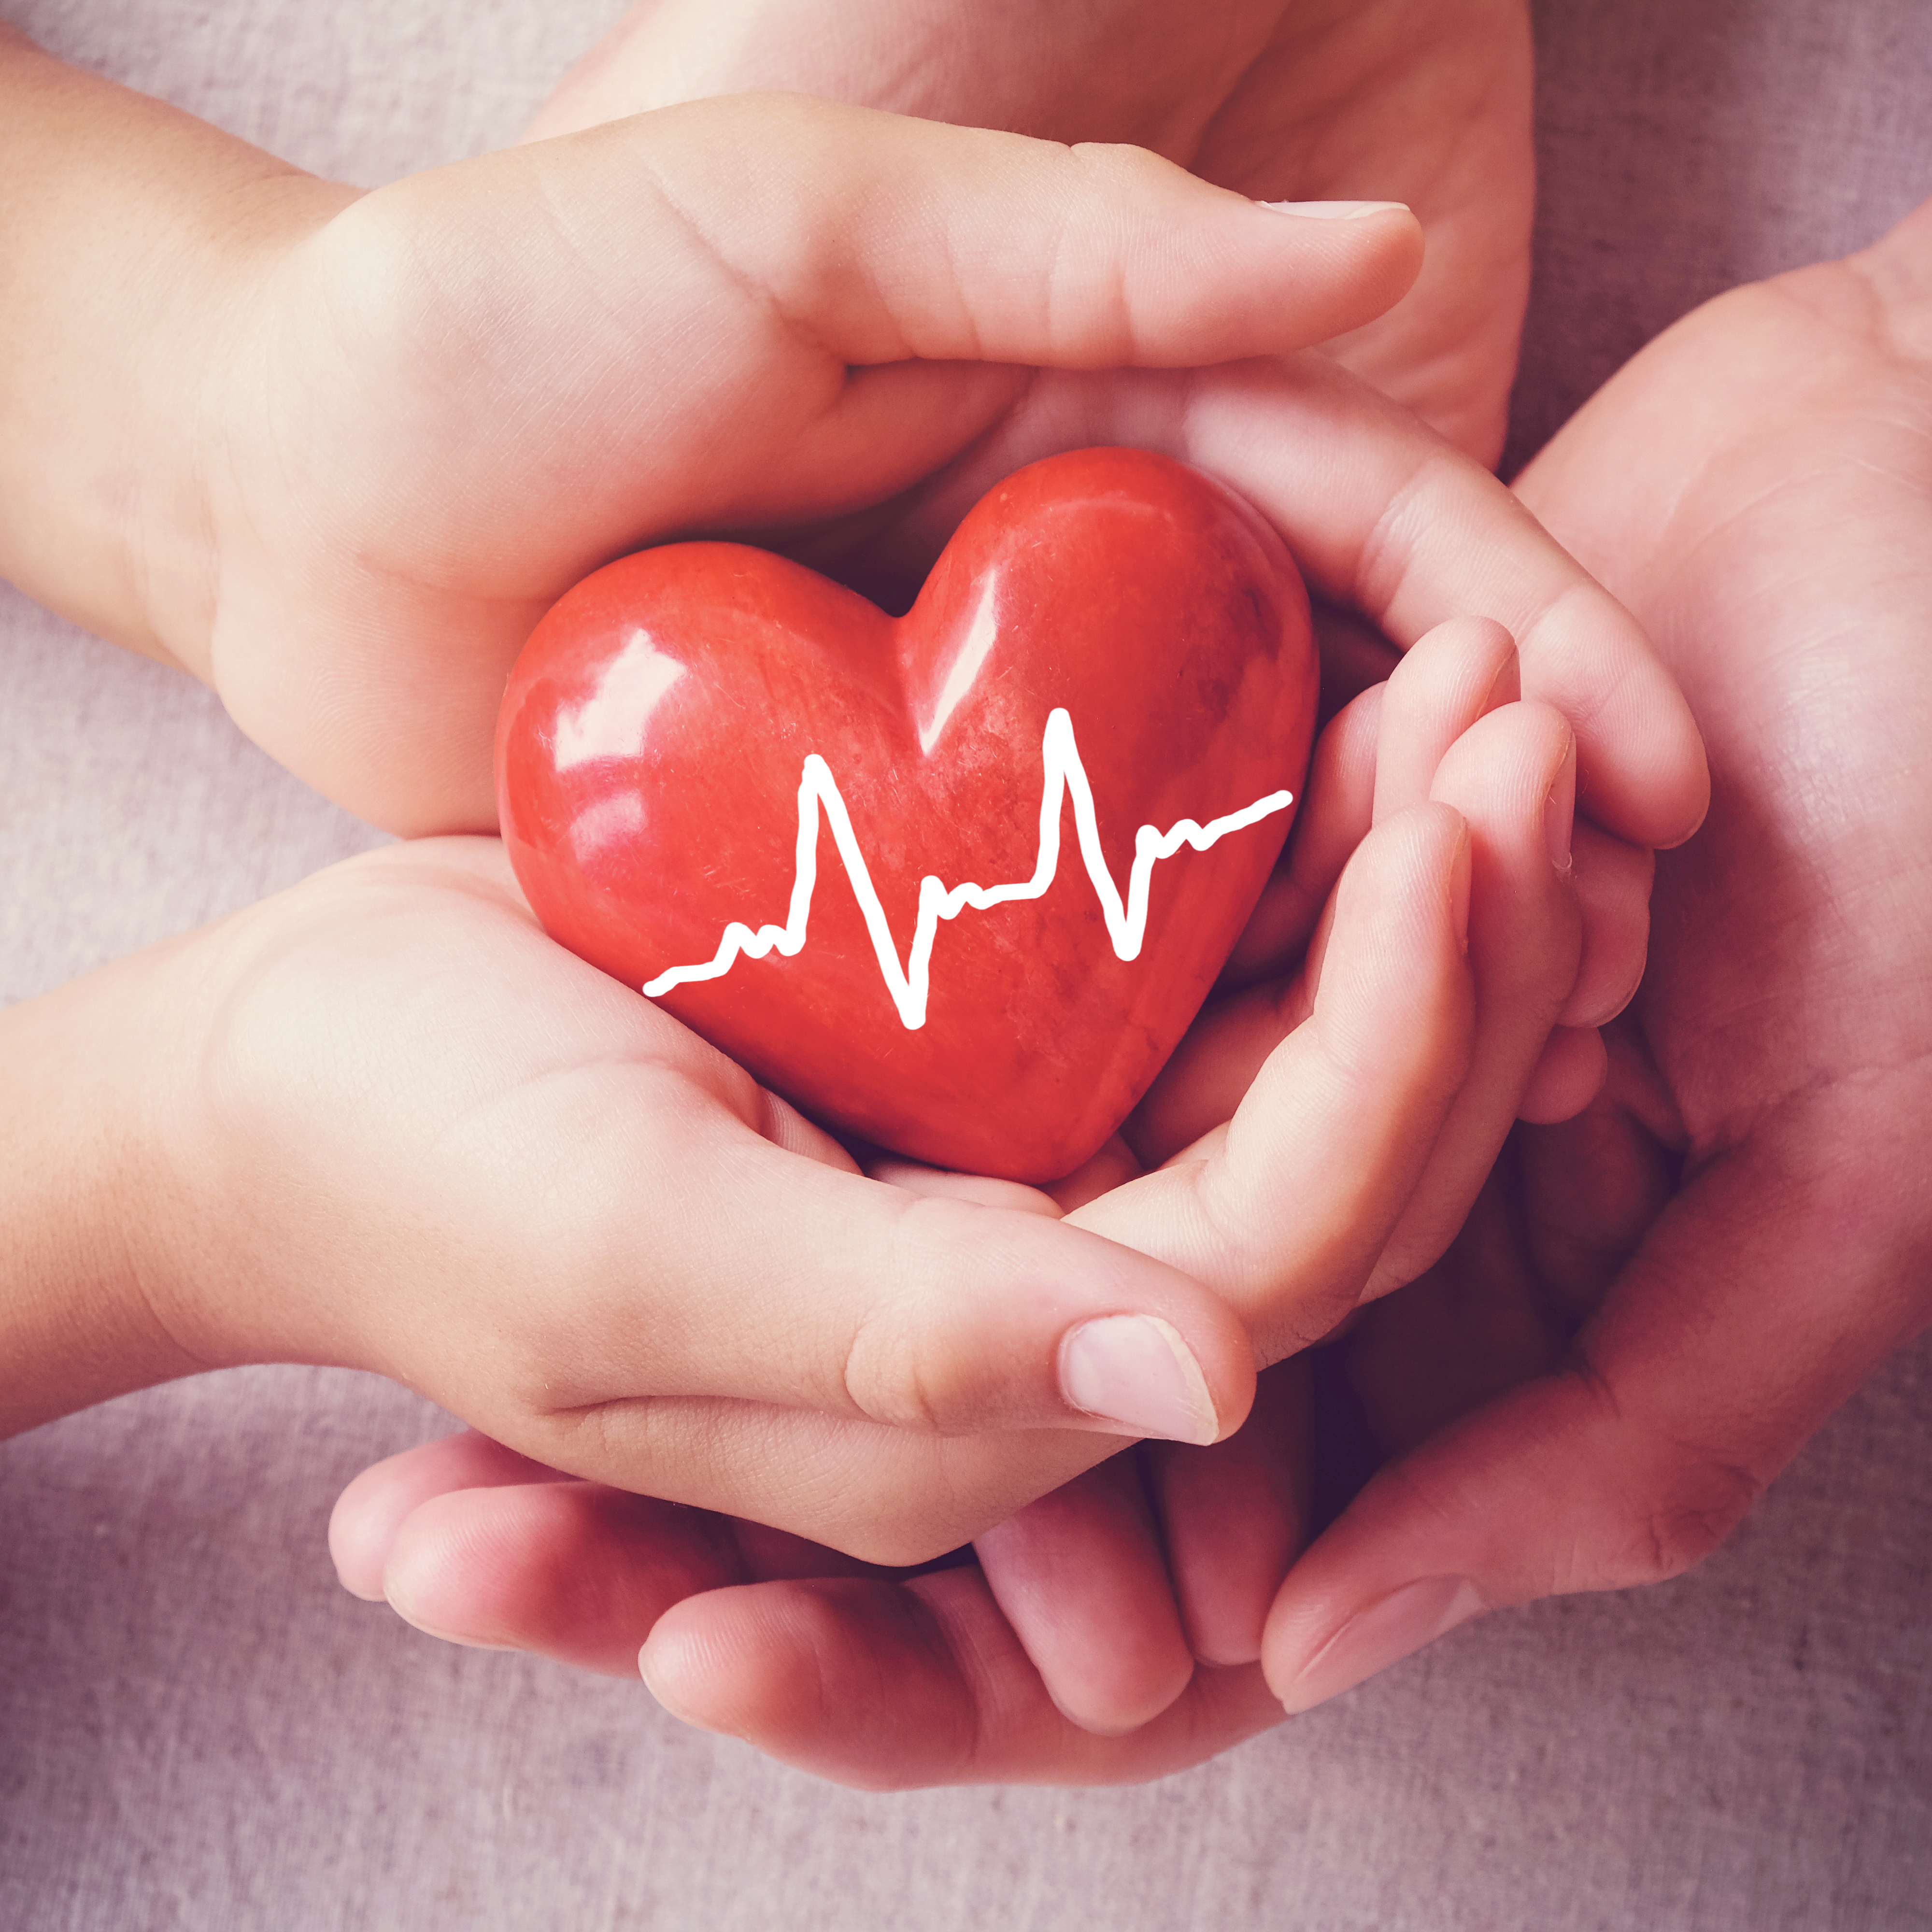 Canva - adult and child hands holiding red heart, adult and child hands holiding red heart, health care, organ donation, family insurance concept (1)